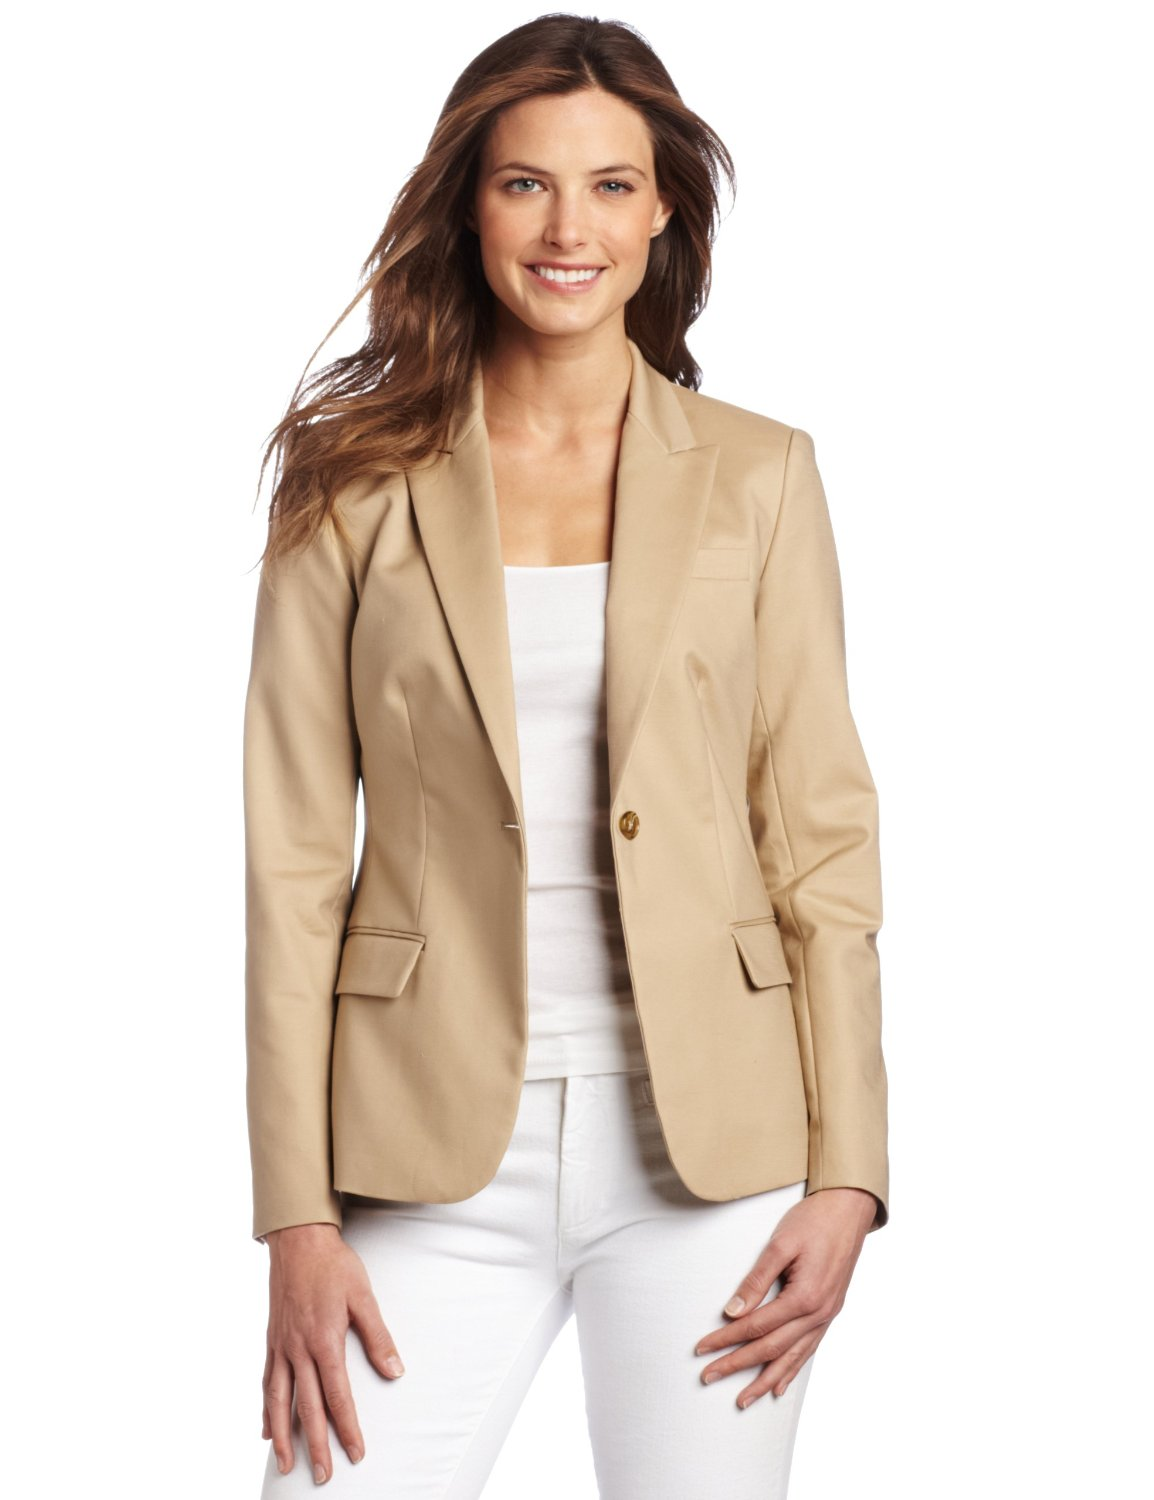 Women Tweed Blazer (Best Price)